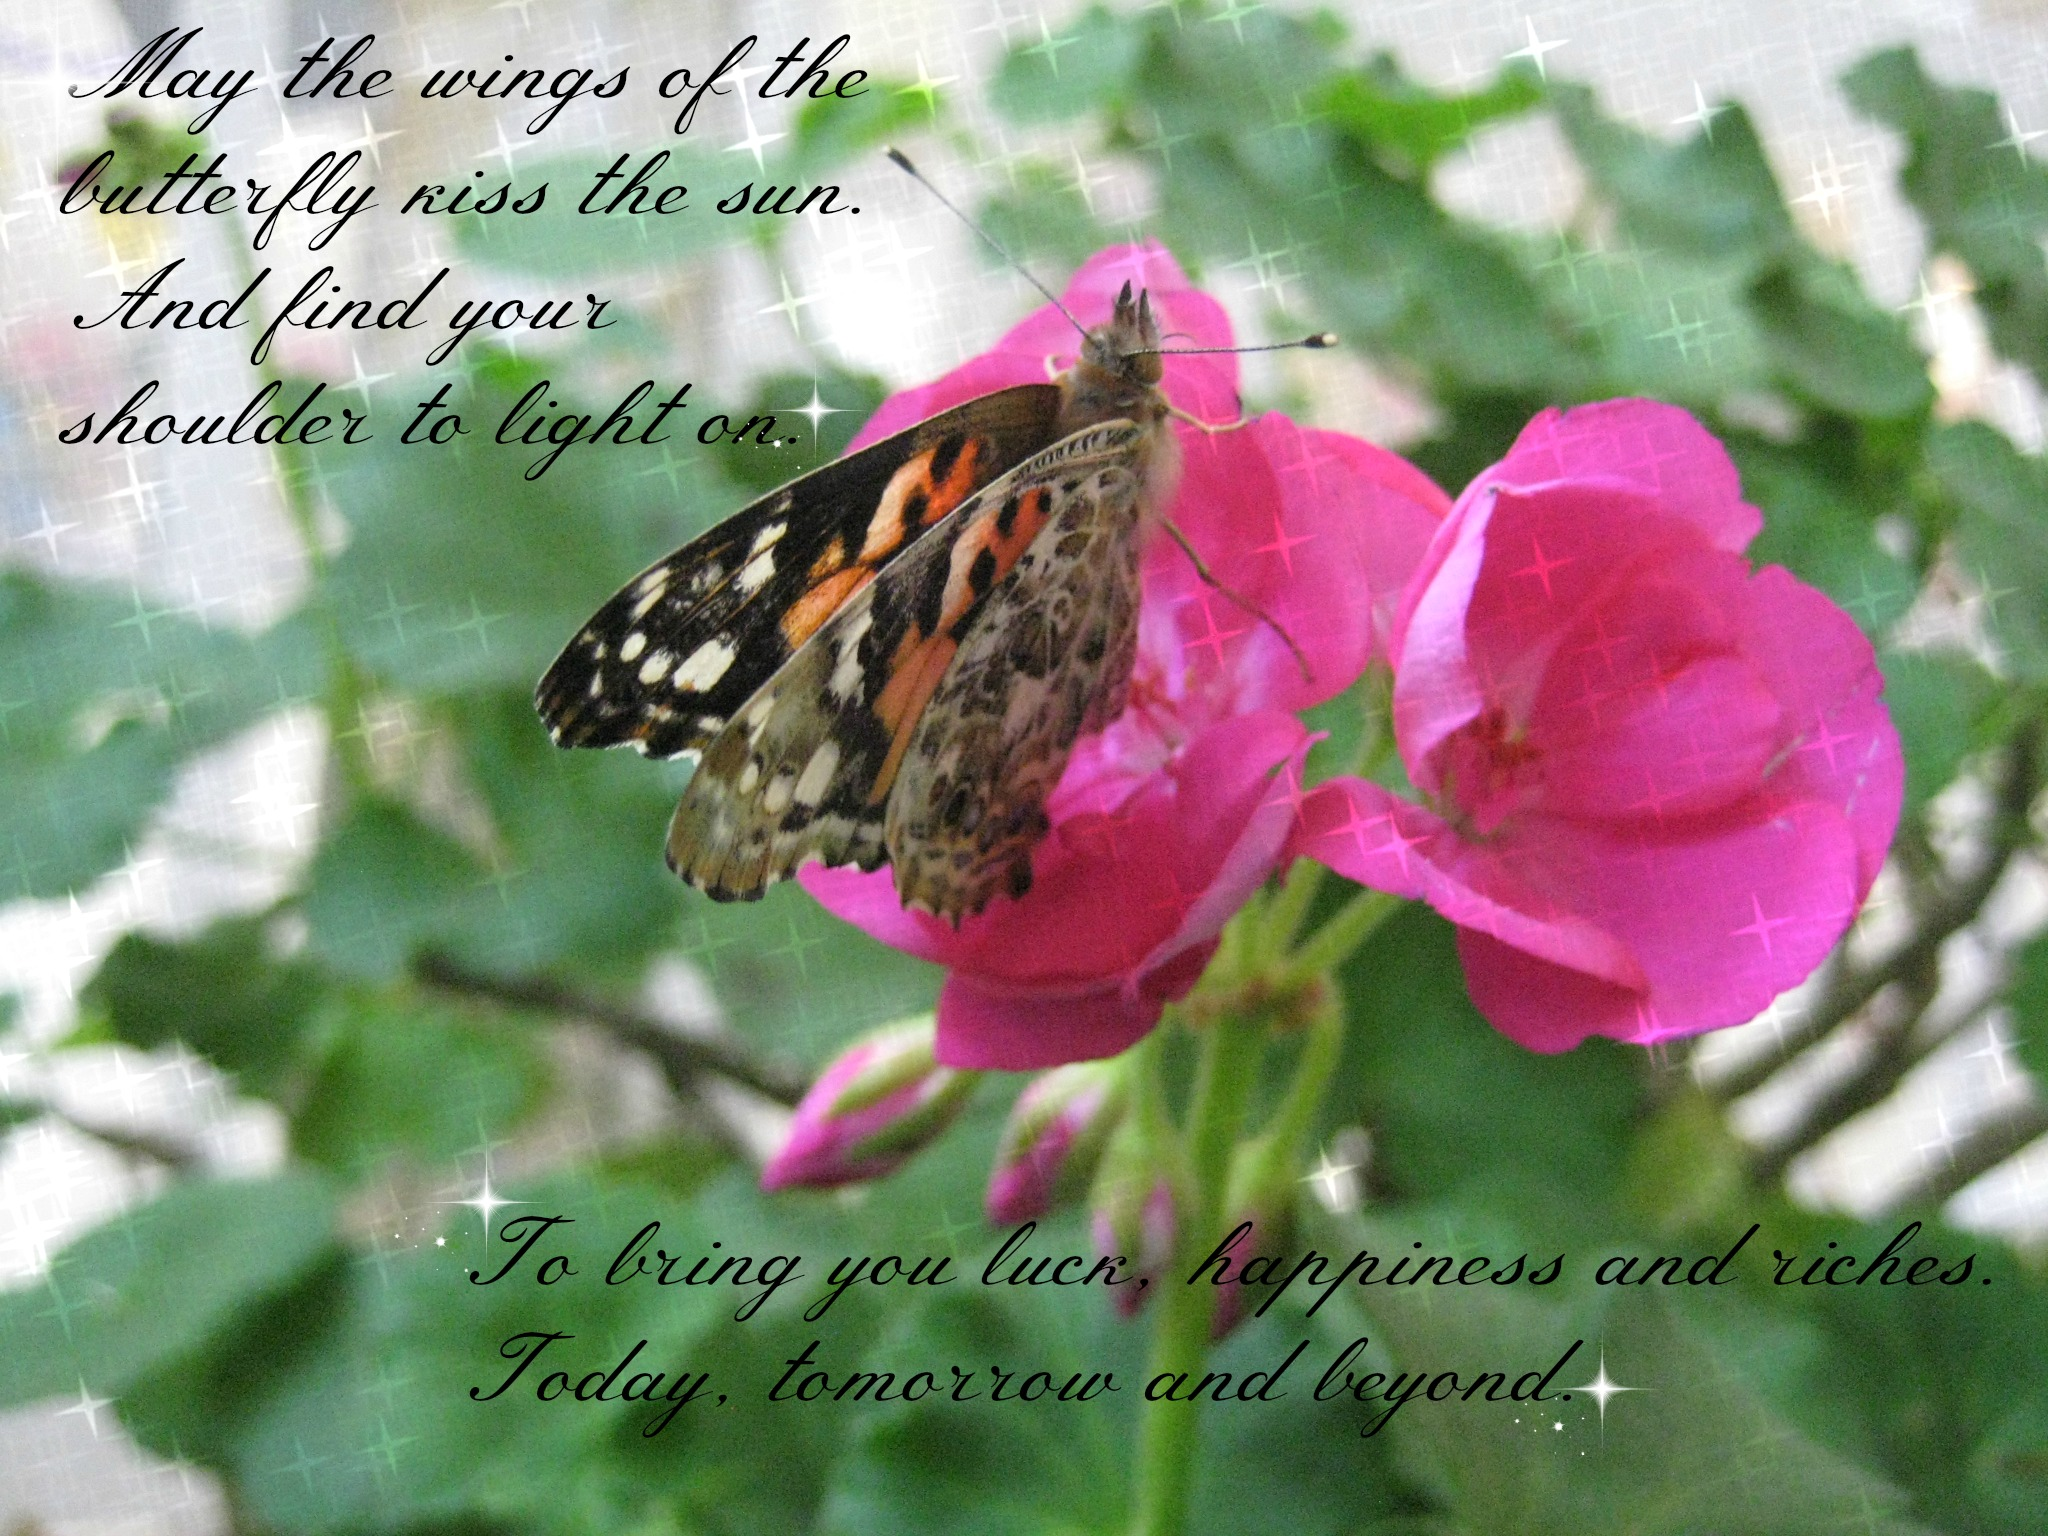 May-the-wings-of-the-butterfly-kiss-the-sun_-And-find-your-shoulder-to-light-on_-To-bring-you-luck-happiness-and-riches_-Today-tomorrow-and-beyond.jpg